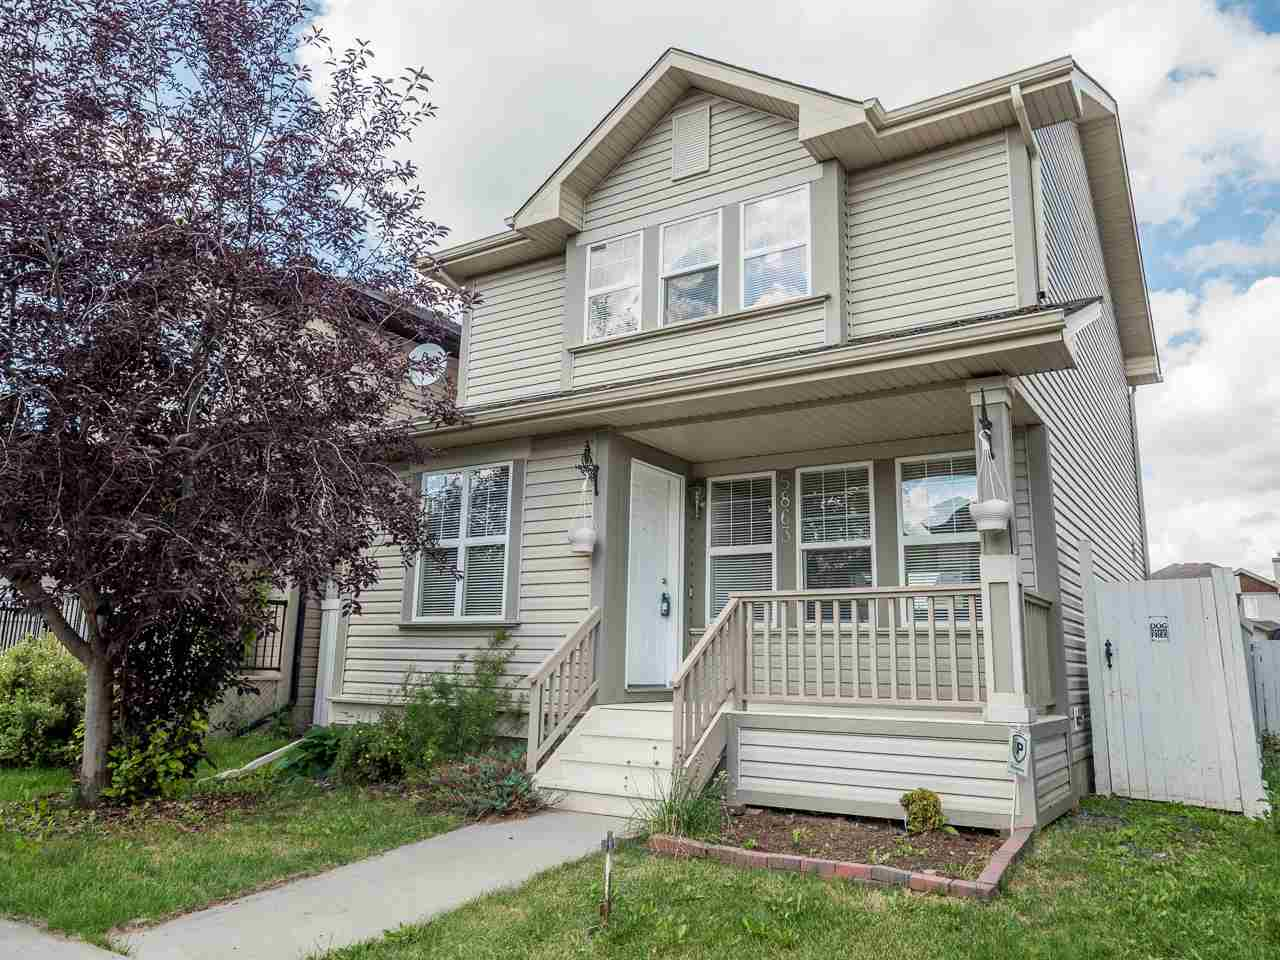 Main Photo: 5863 SUTTER Place in Edmonton: Zone 14 House for sale : MLS® # E4076209